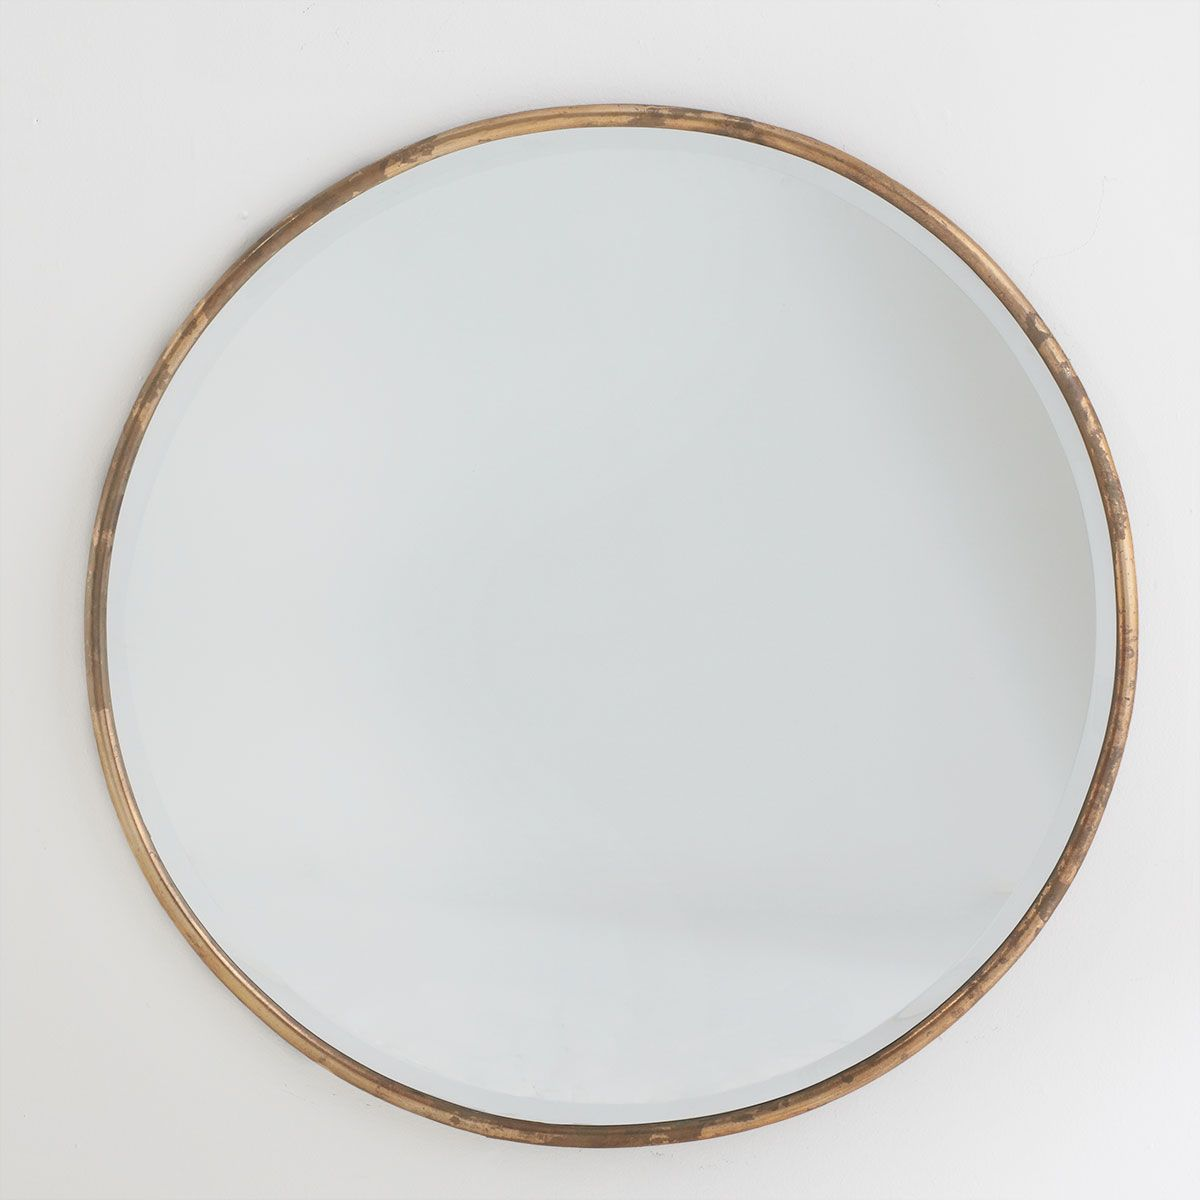 Round Mirror With Gold Frame Would Like To Replace My